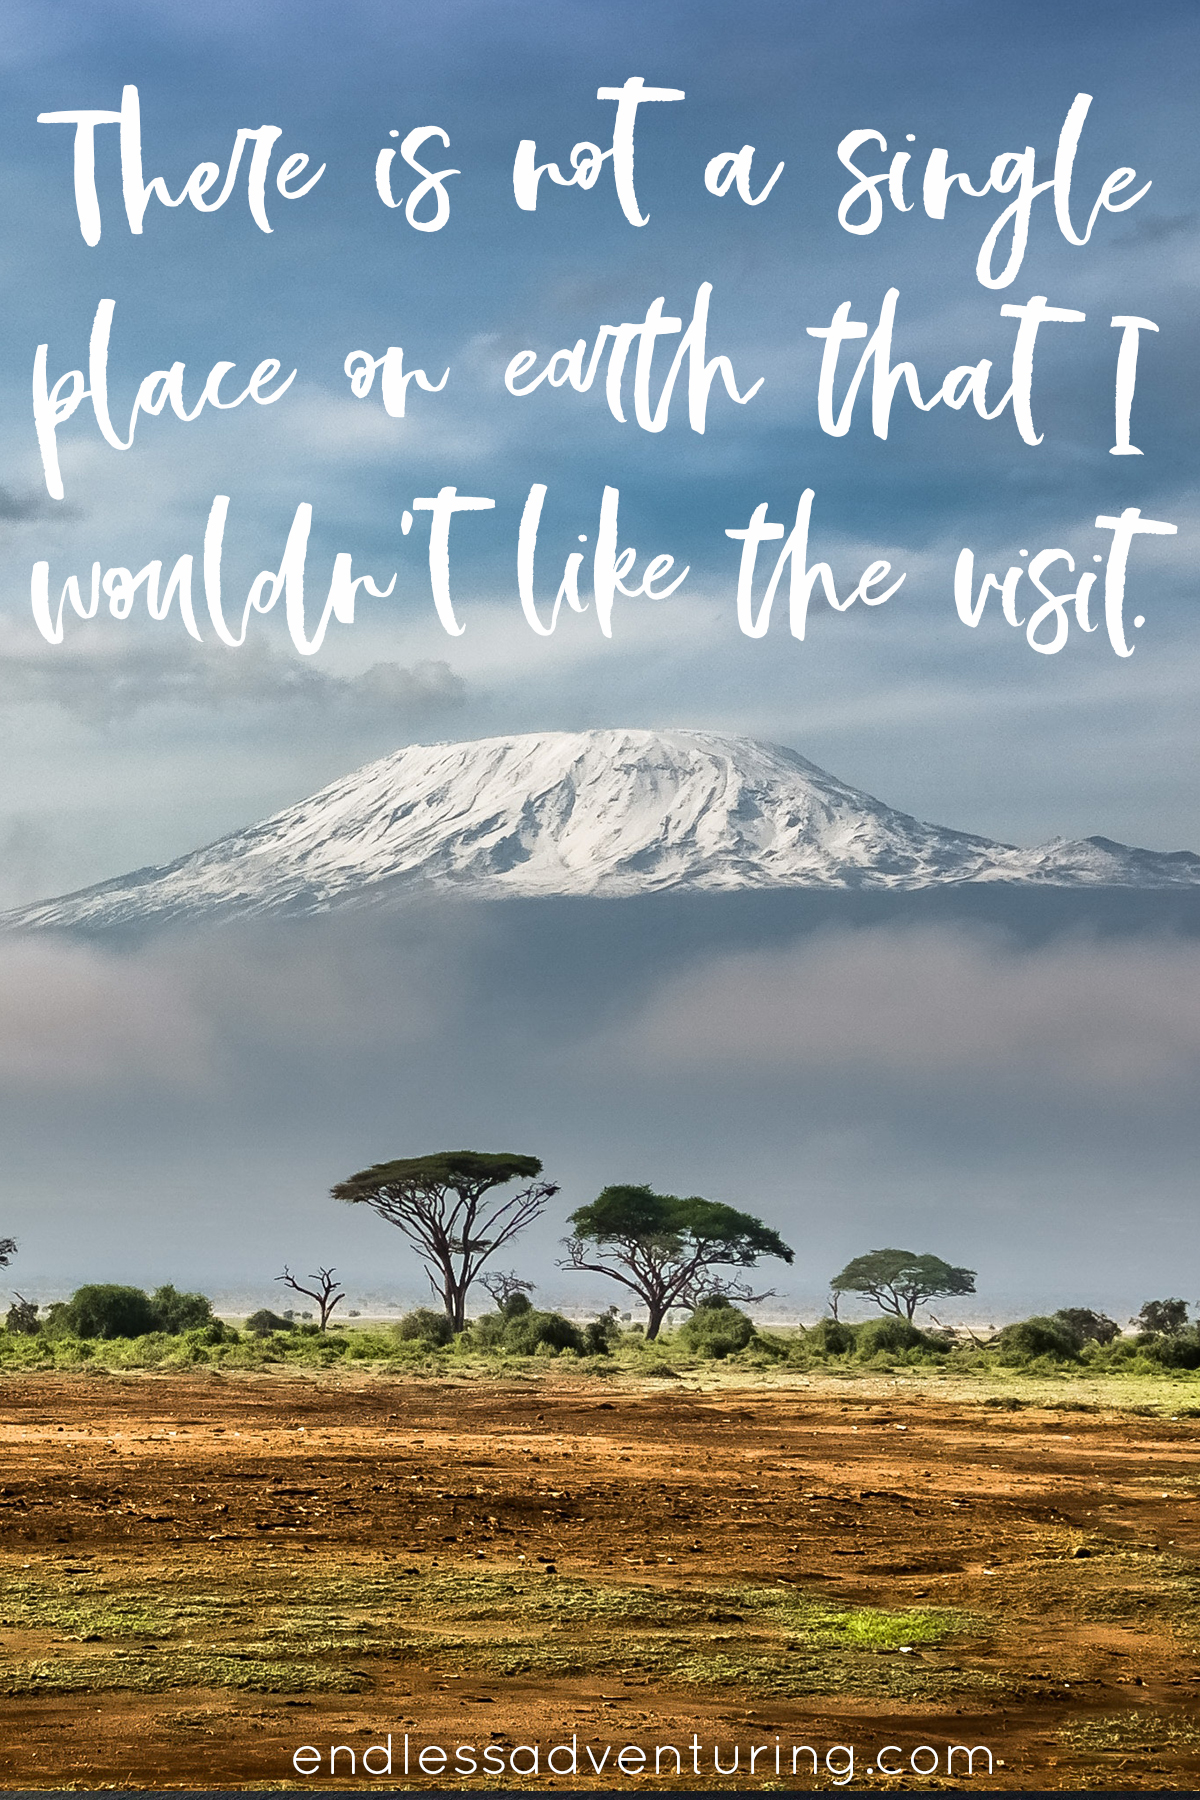 Adventure Quote - There Is Not A Single Place On Earth That I Wouldn't Visit